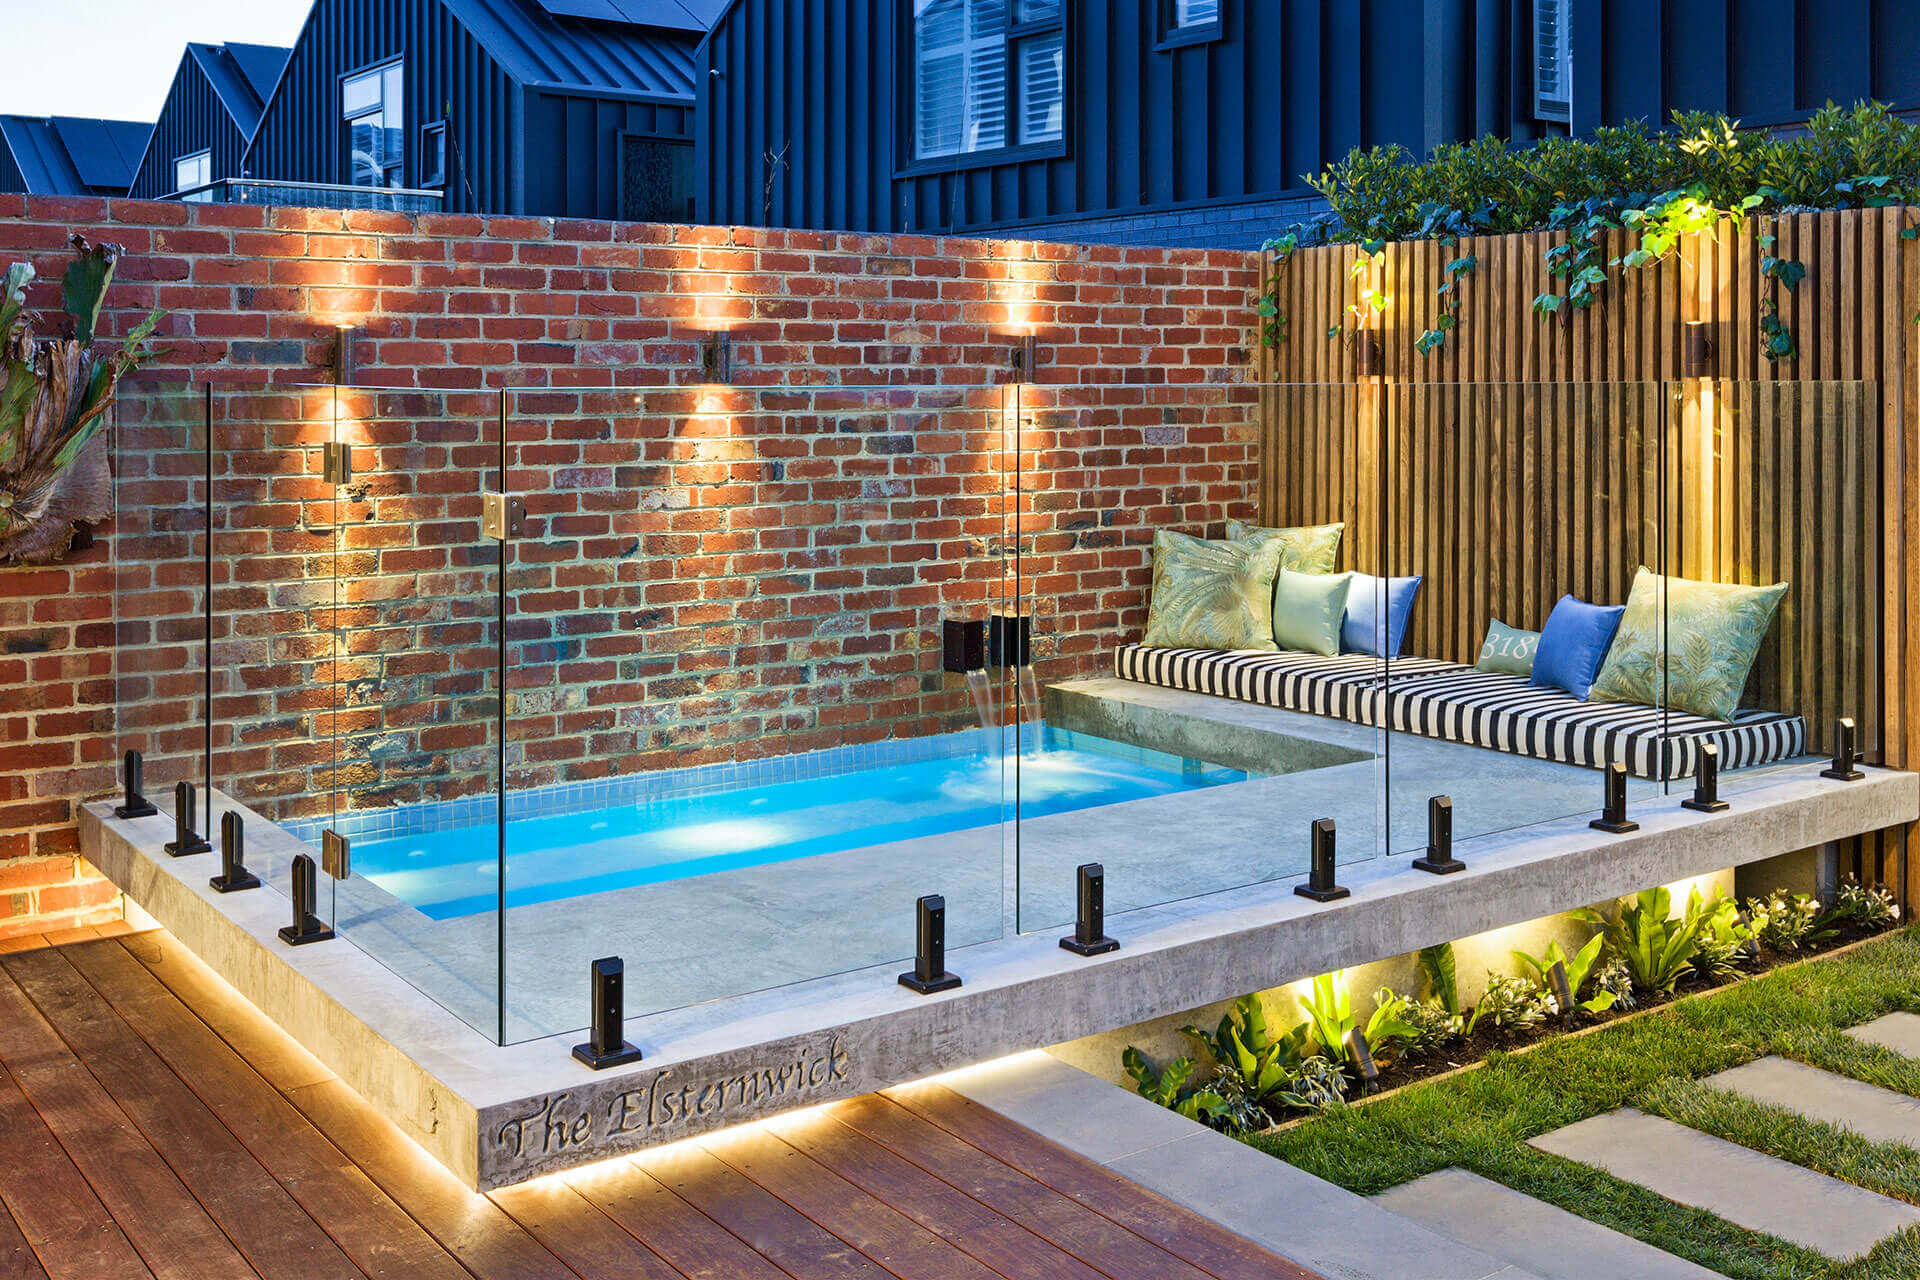 Why You Should Go For Glass Pool Fencing In Lugarno